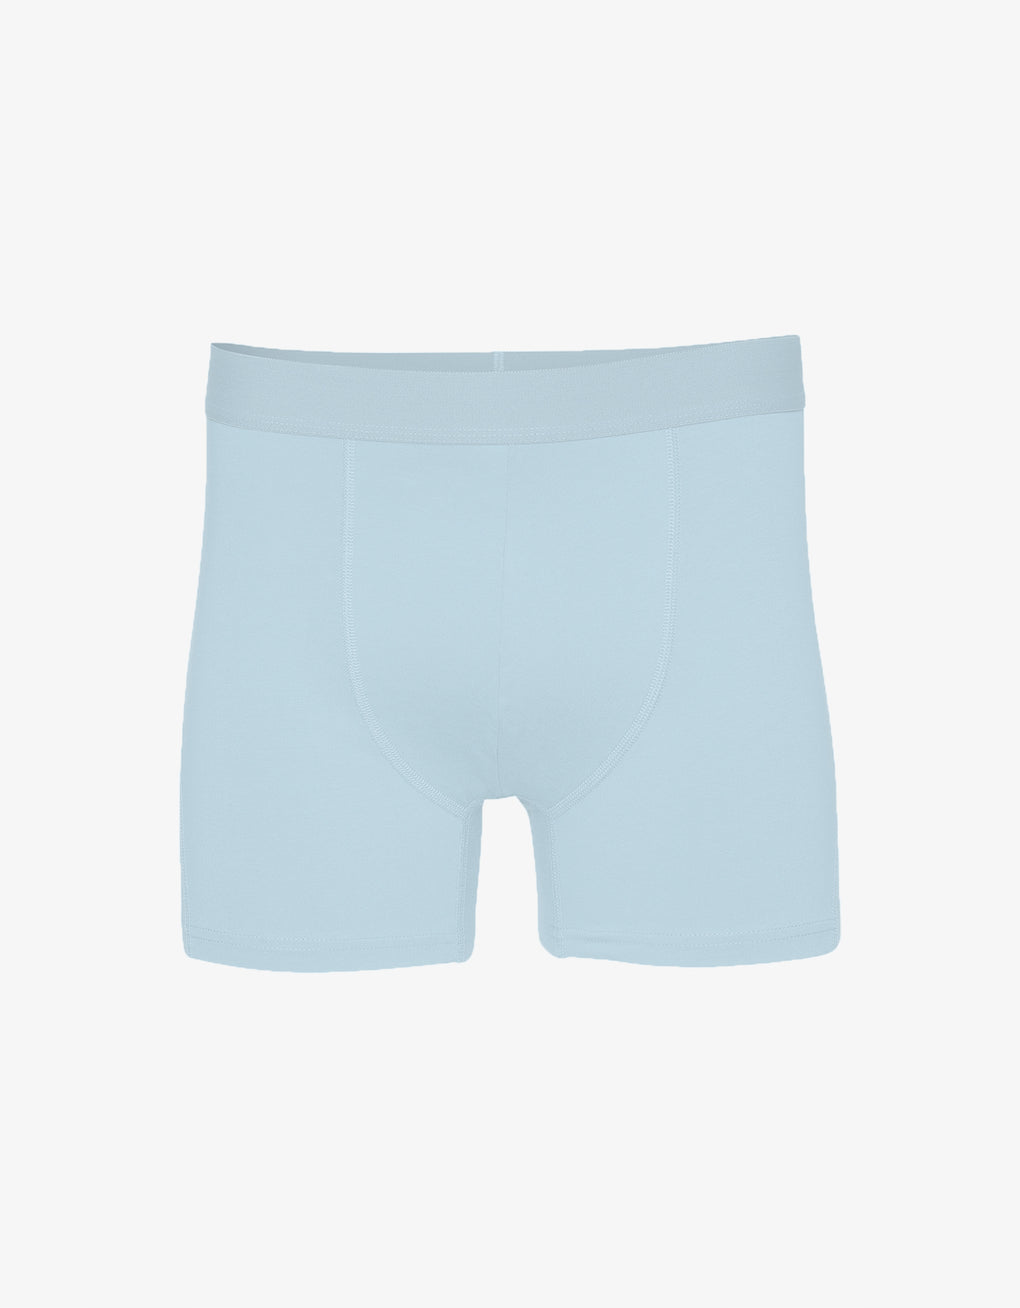 Colorful Standard Classic Organic Boxer Briefs Underwear Polar Blue